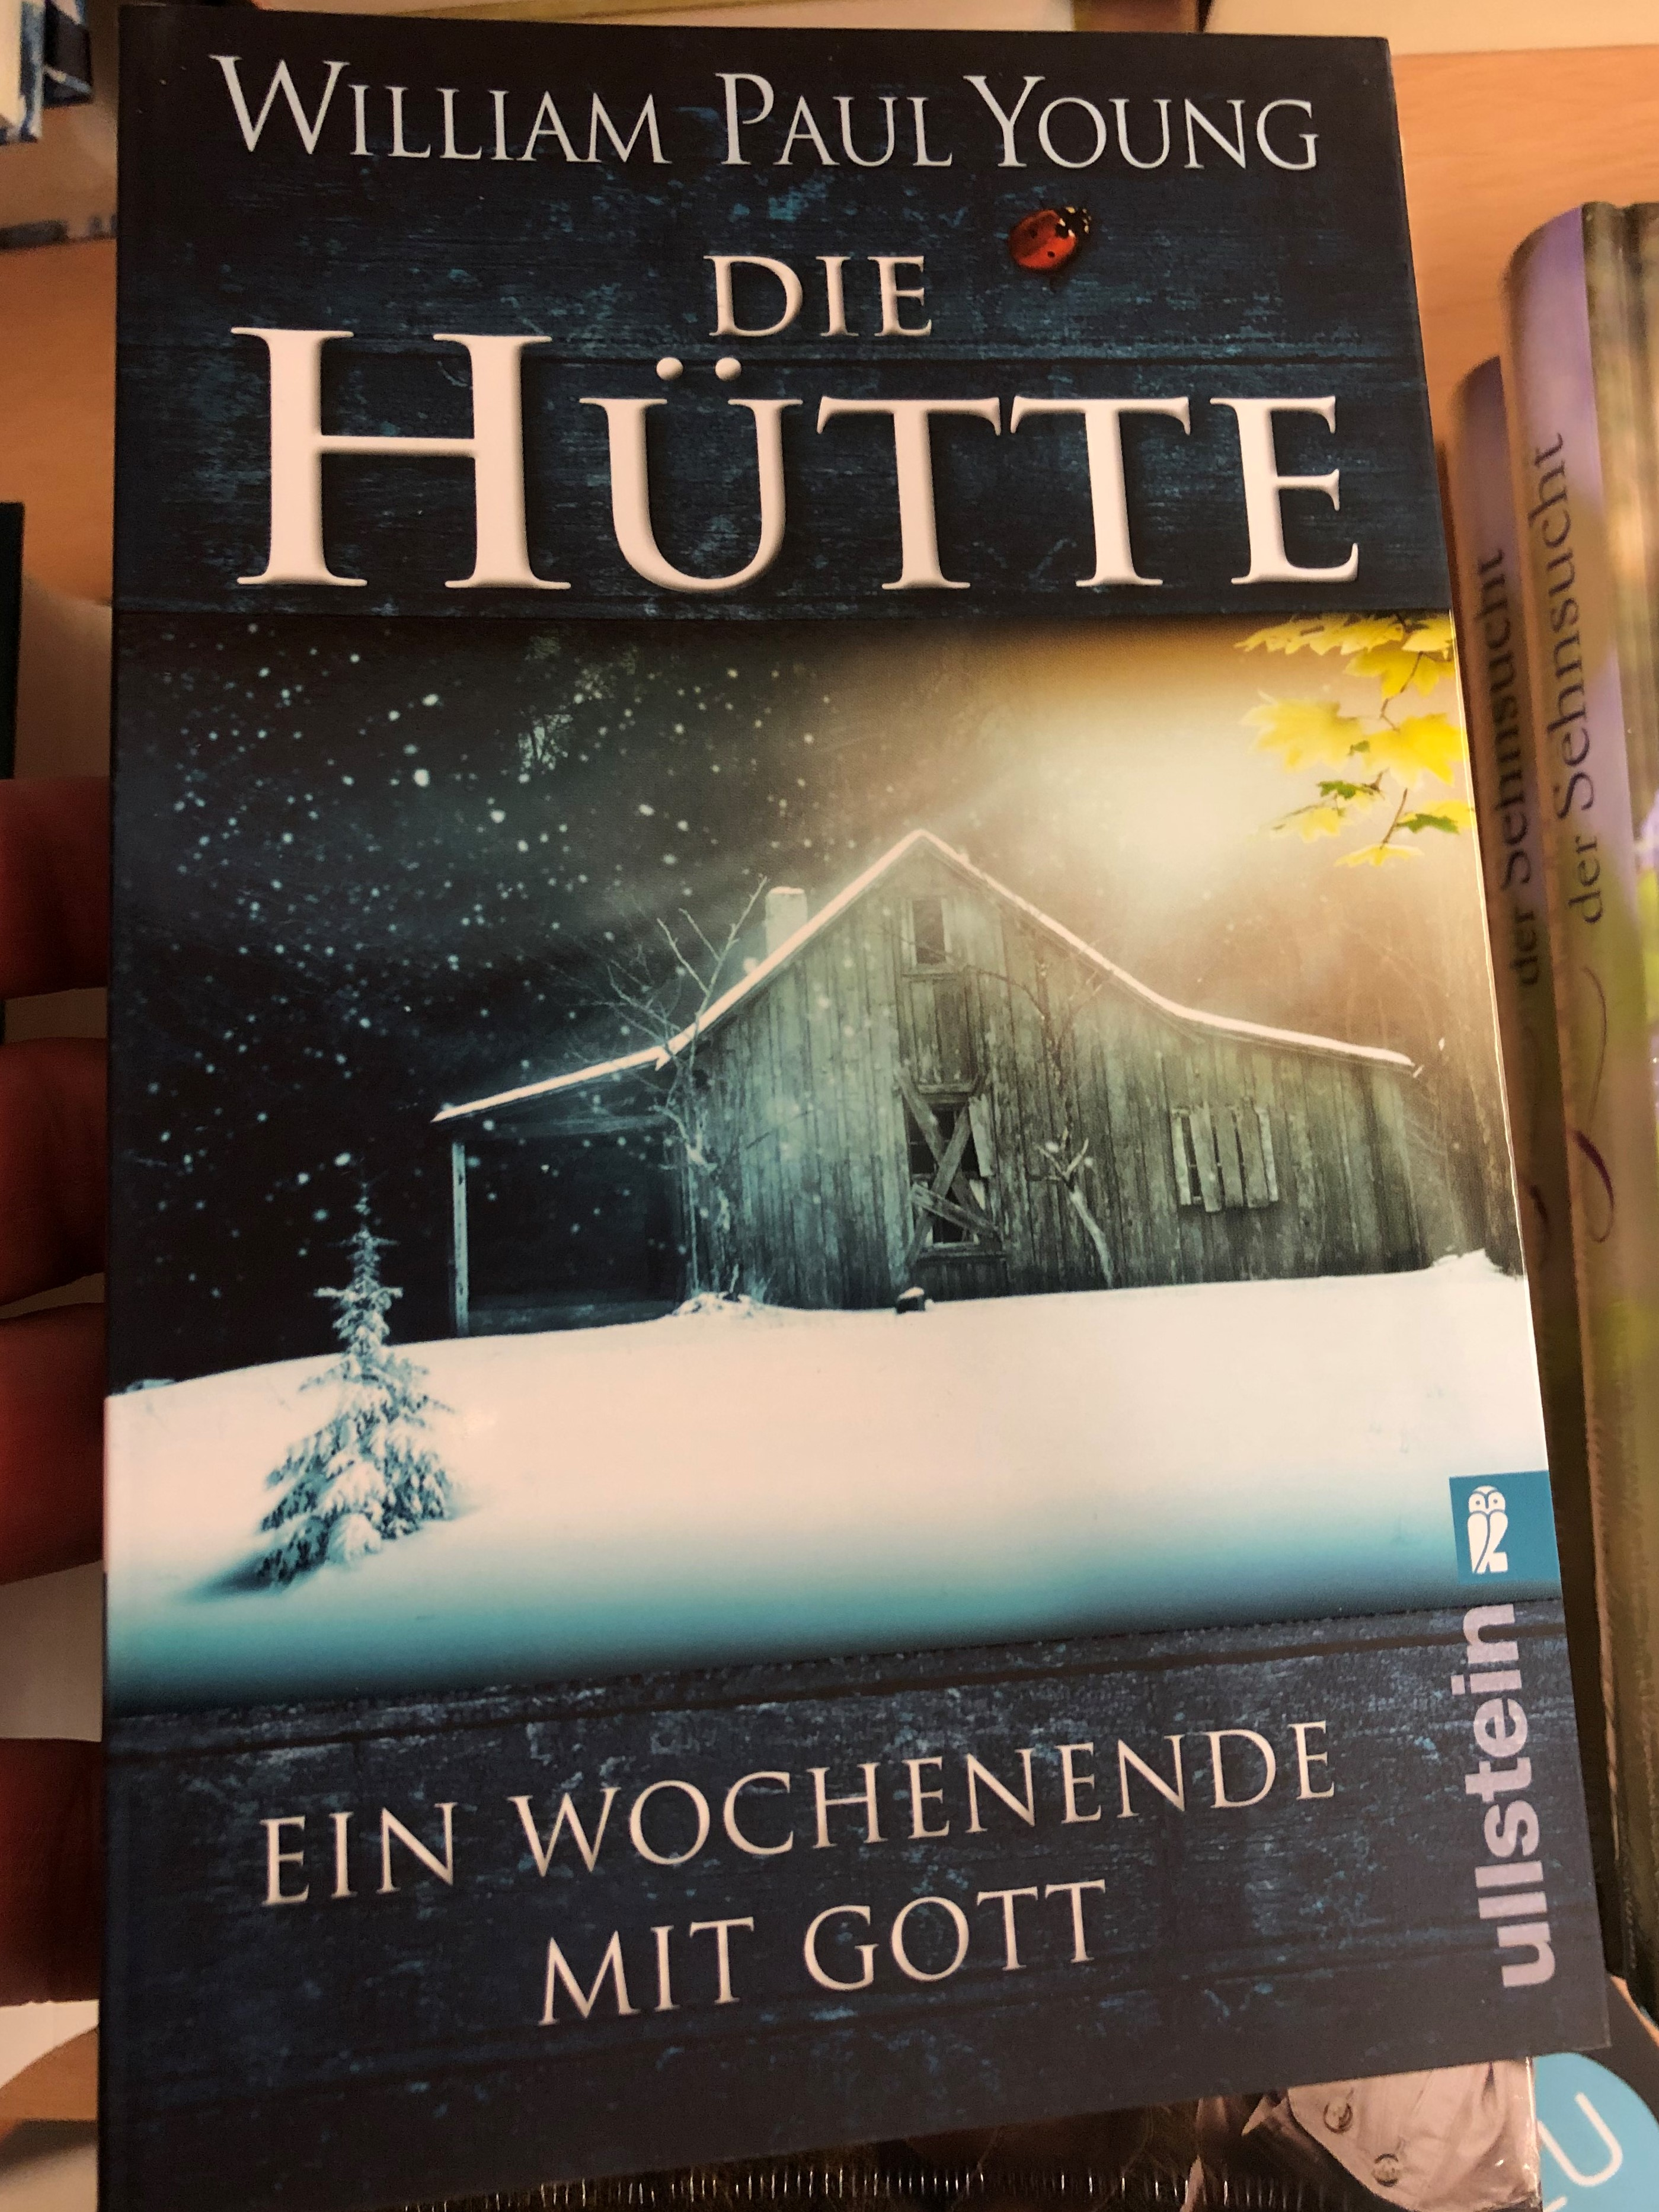 die-h-tte-by-william-paul-young-german-edition-of-the-shack-1.jpg